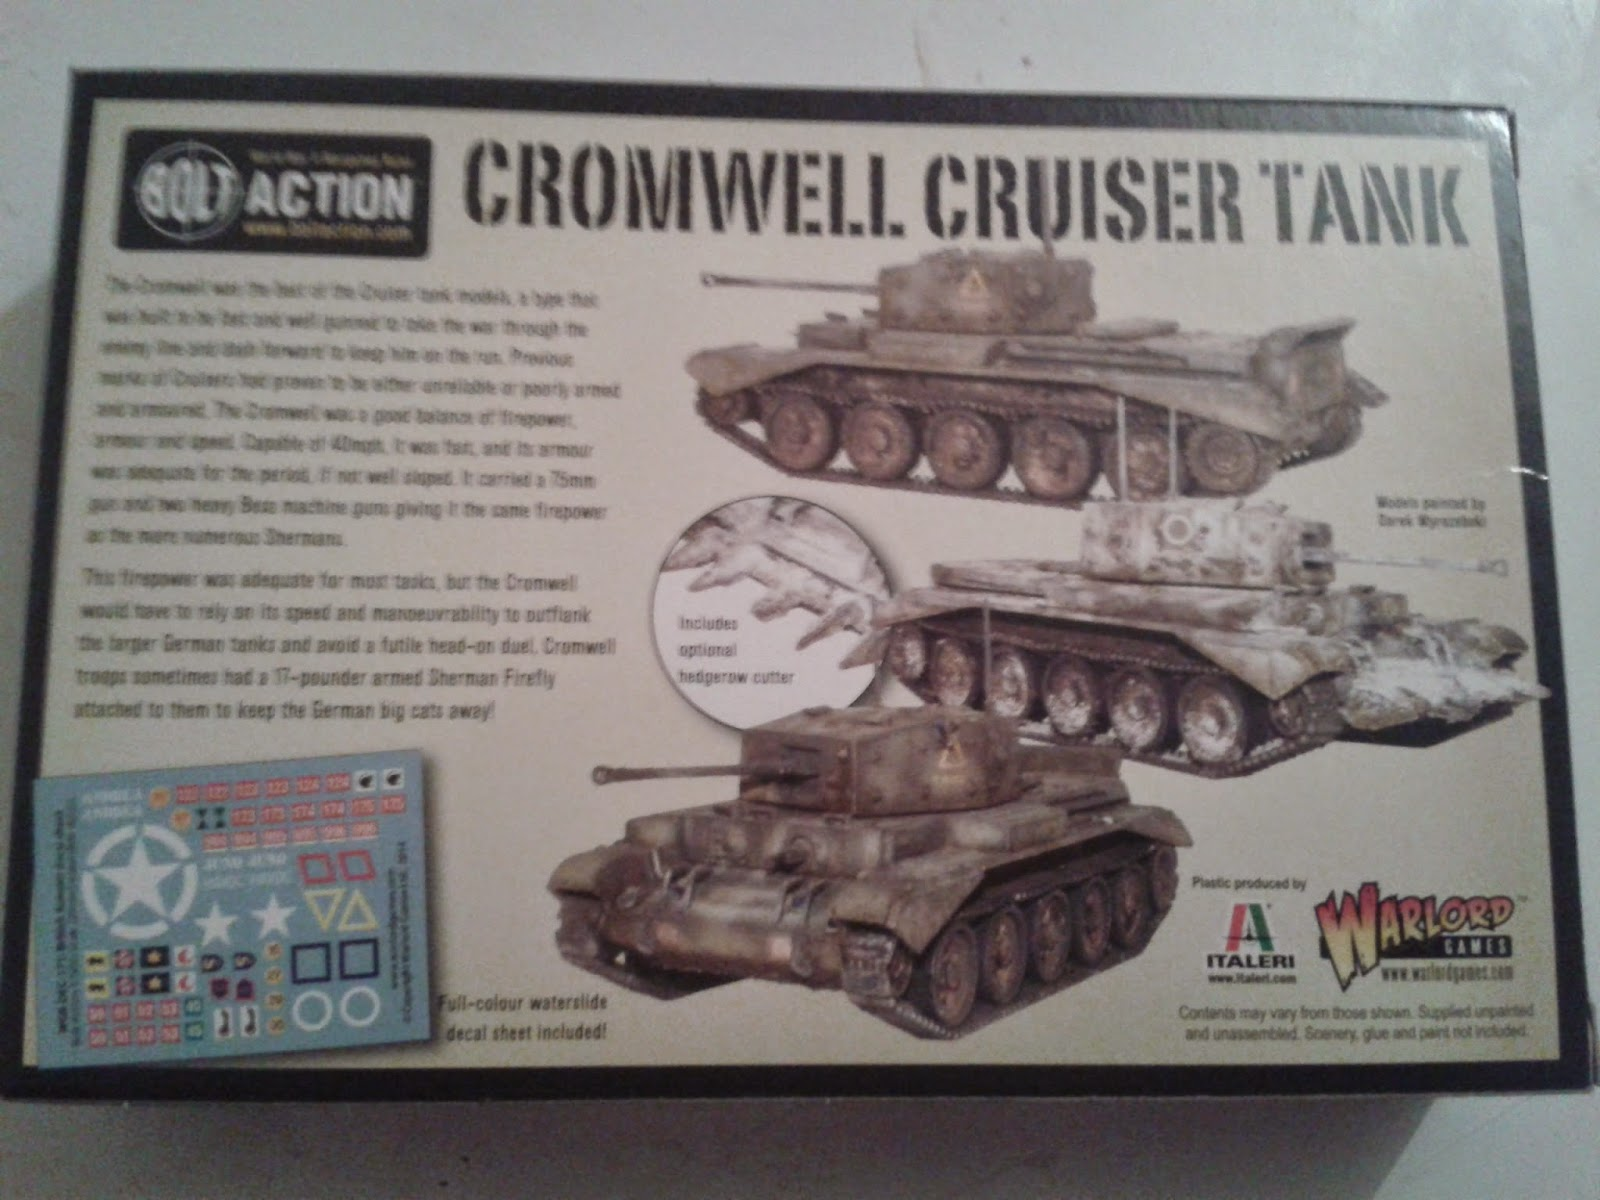 Bolt Action Ww2 Cromwell Cruiser Tank Warlord Games 28 Mm for sale online